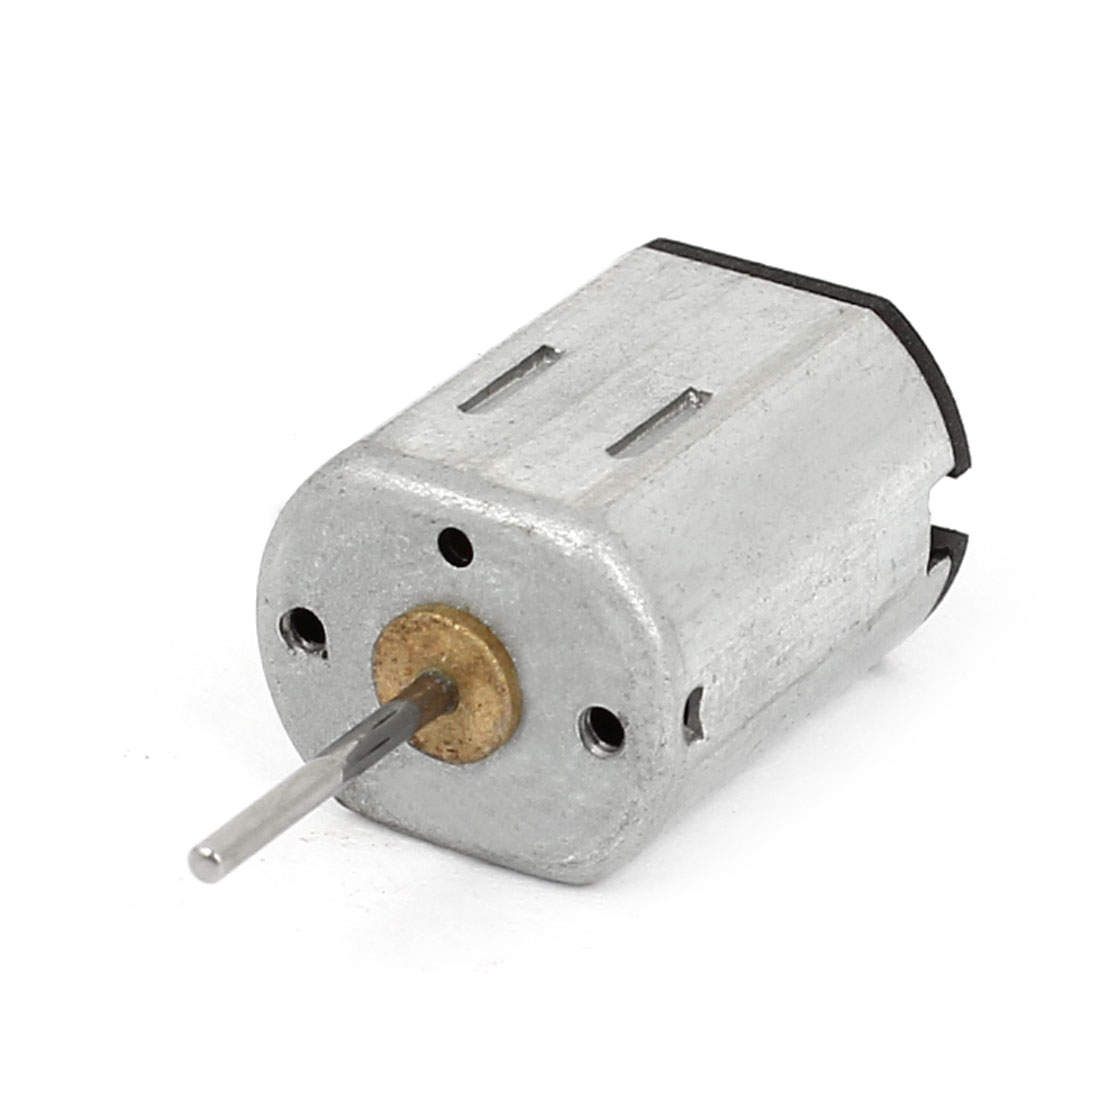 2mm Shaft Dia 26500RPM Speed DC 1.5V-6V Miniature Motor Replacement